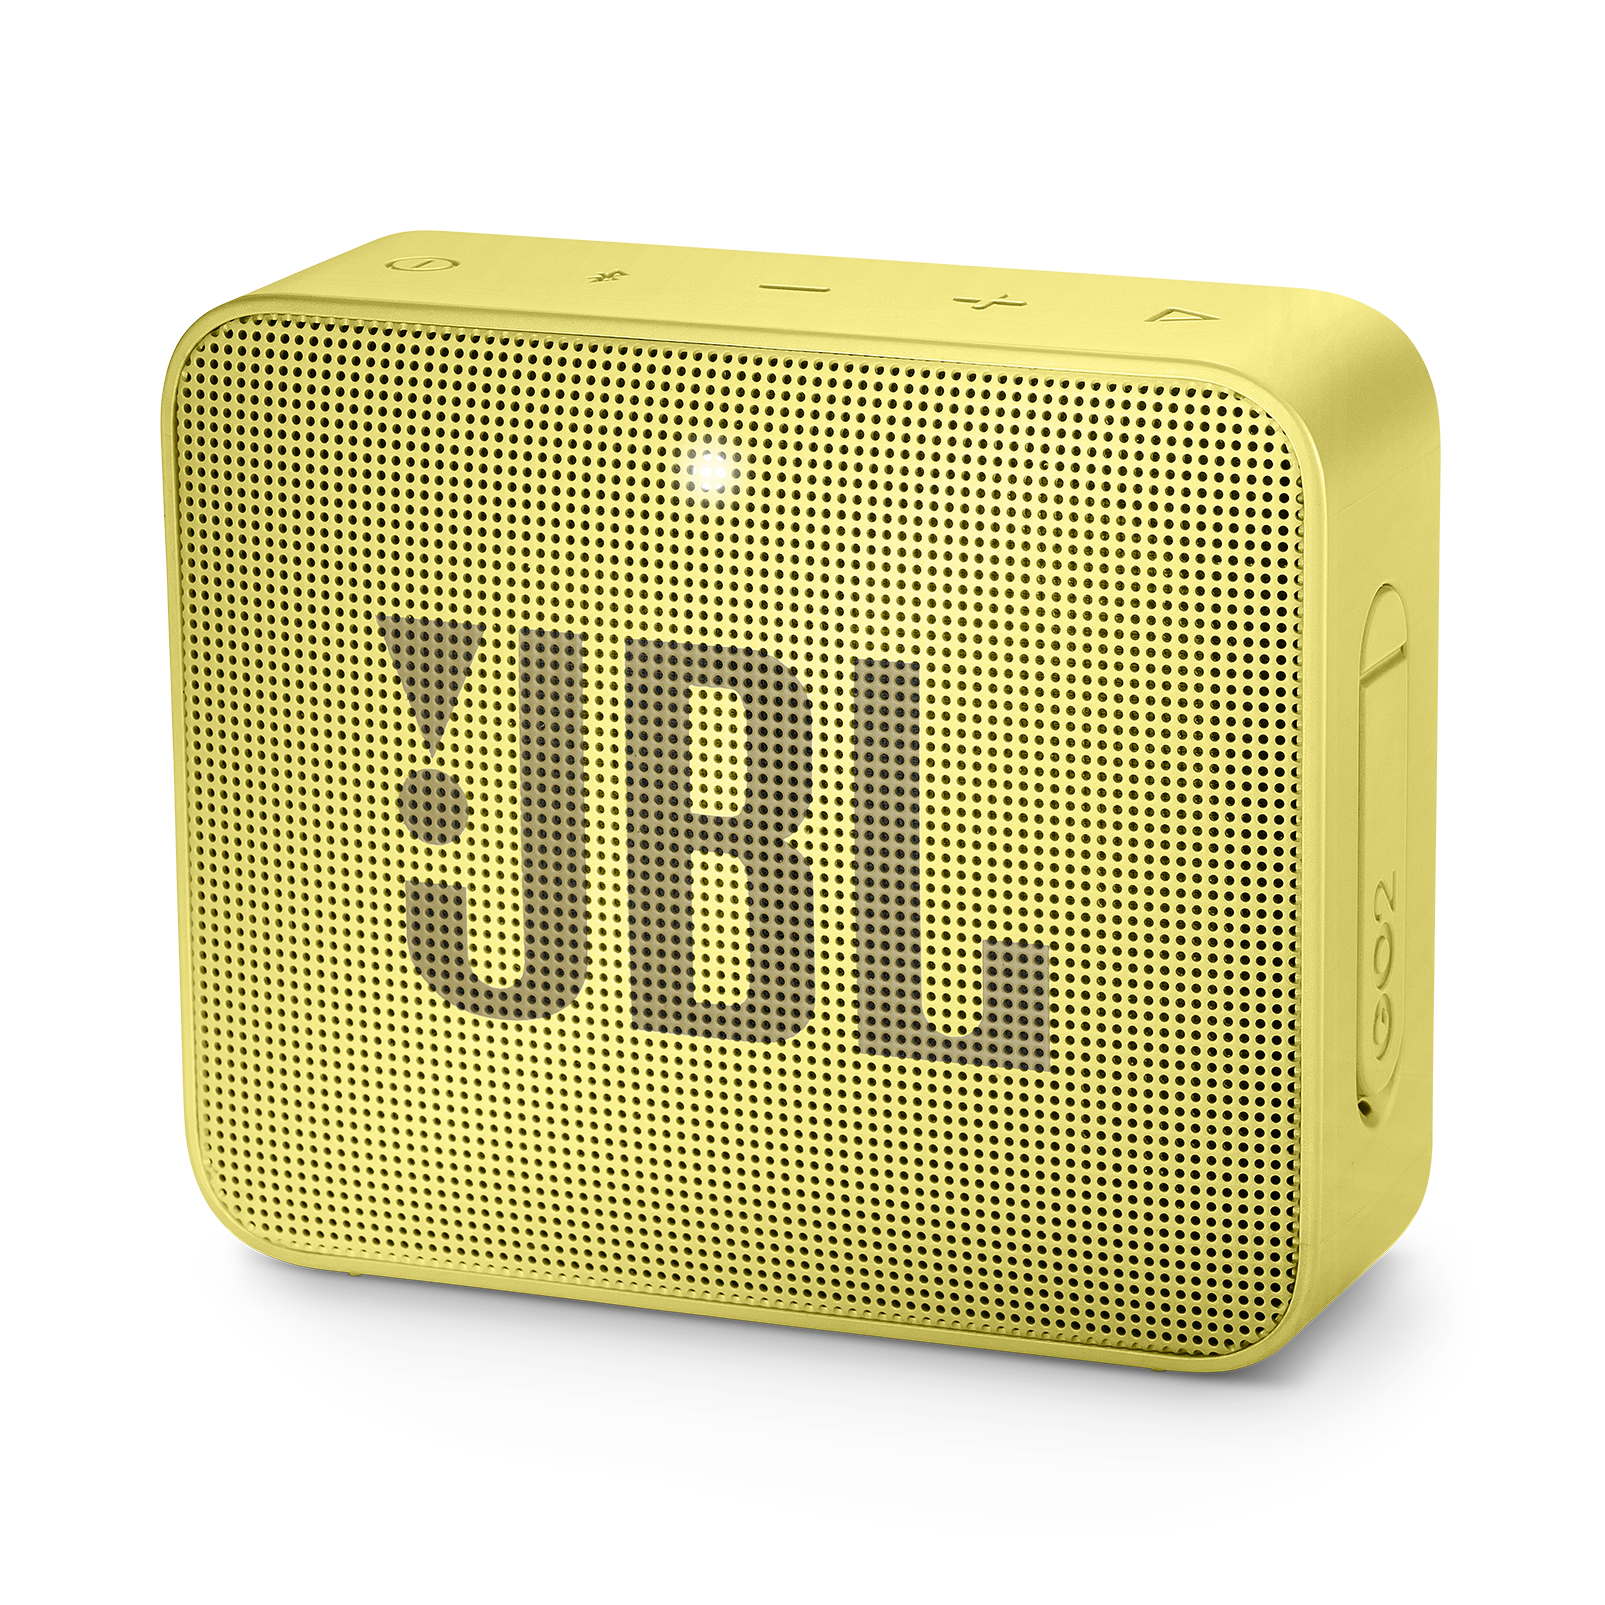 JBL GO 2 - Lemonade Yellow - Portable Bluetooth speaker - Hero